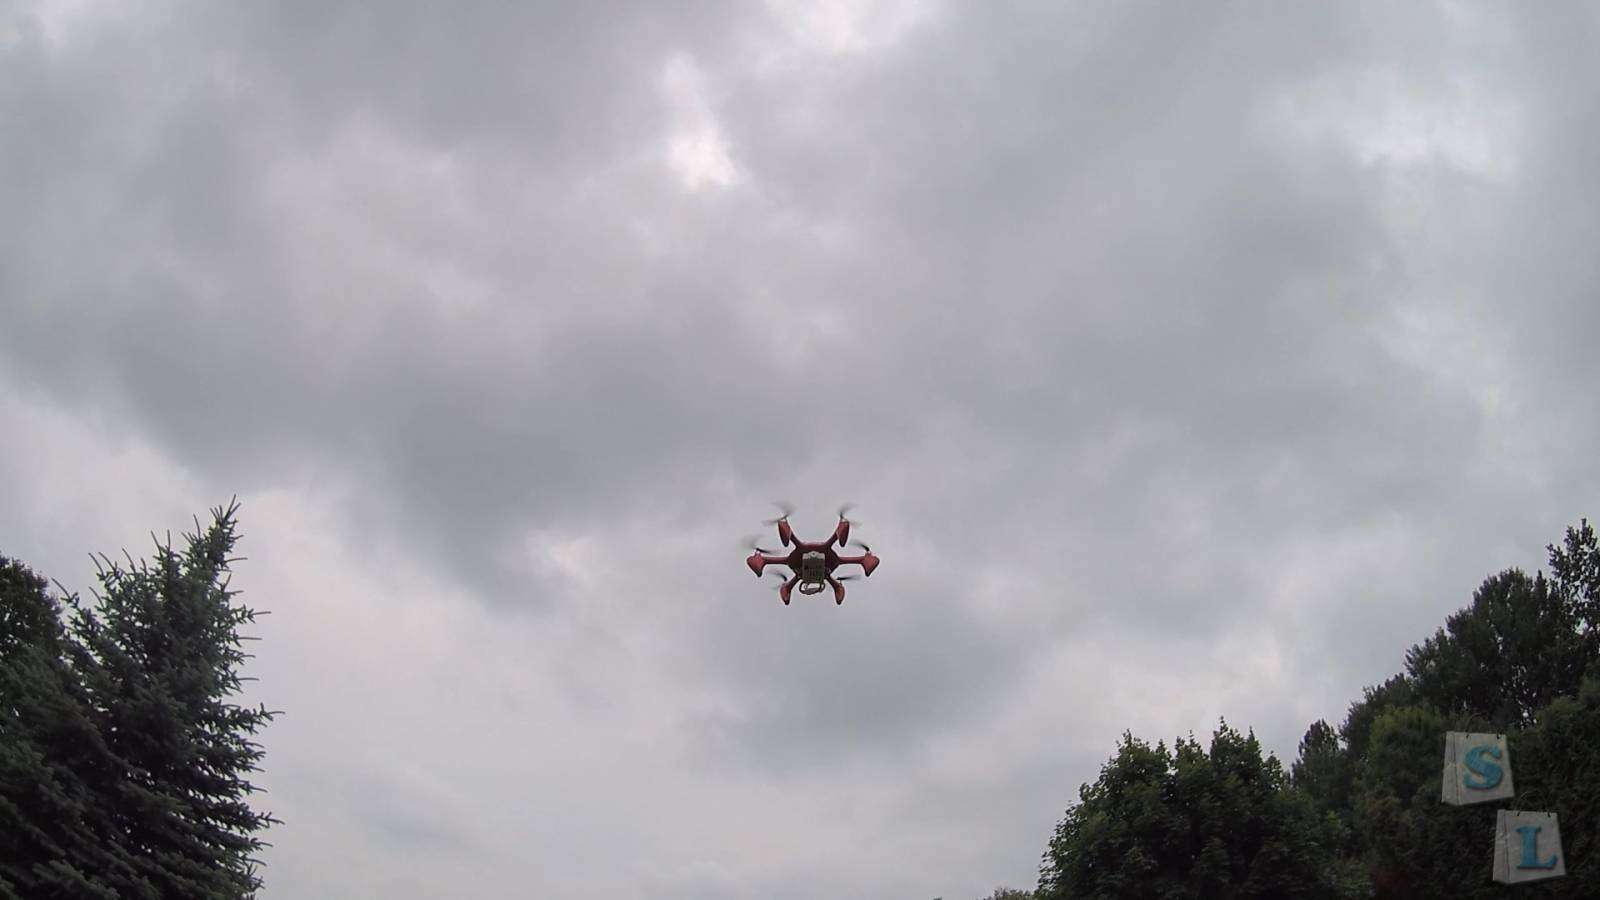 Banggood: Eachine X6 2.4GHz, 4Ch, 6 Axis Gyro, RC Hexacopter with 2MP Camera (RTF)